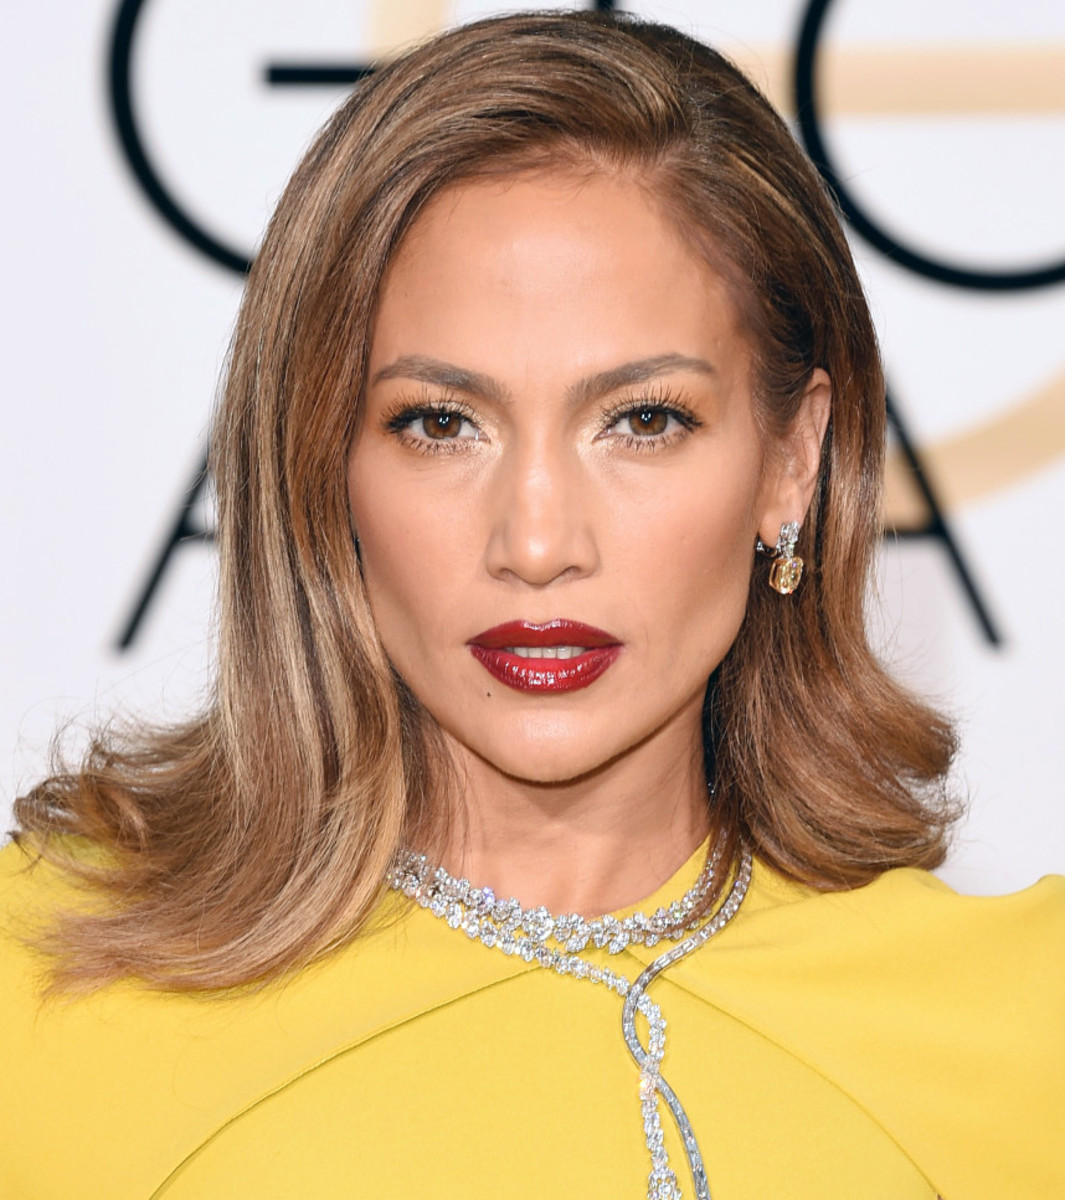 Jennifer Lopez at the 2016 Golden Globes; makeup by Mary Phillips